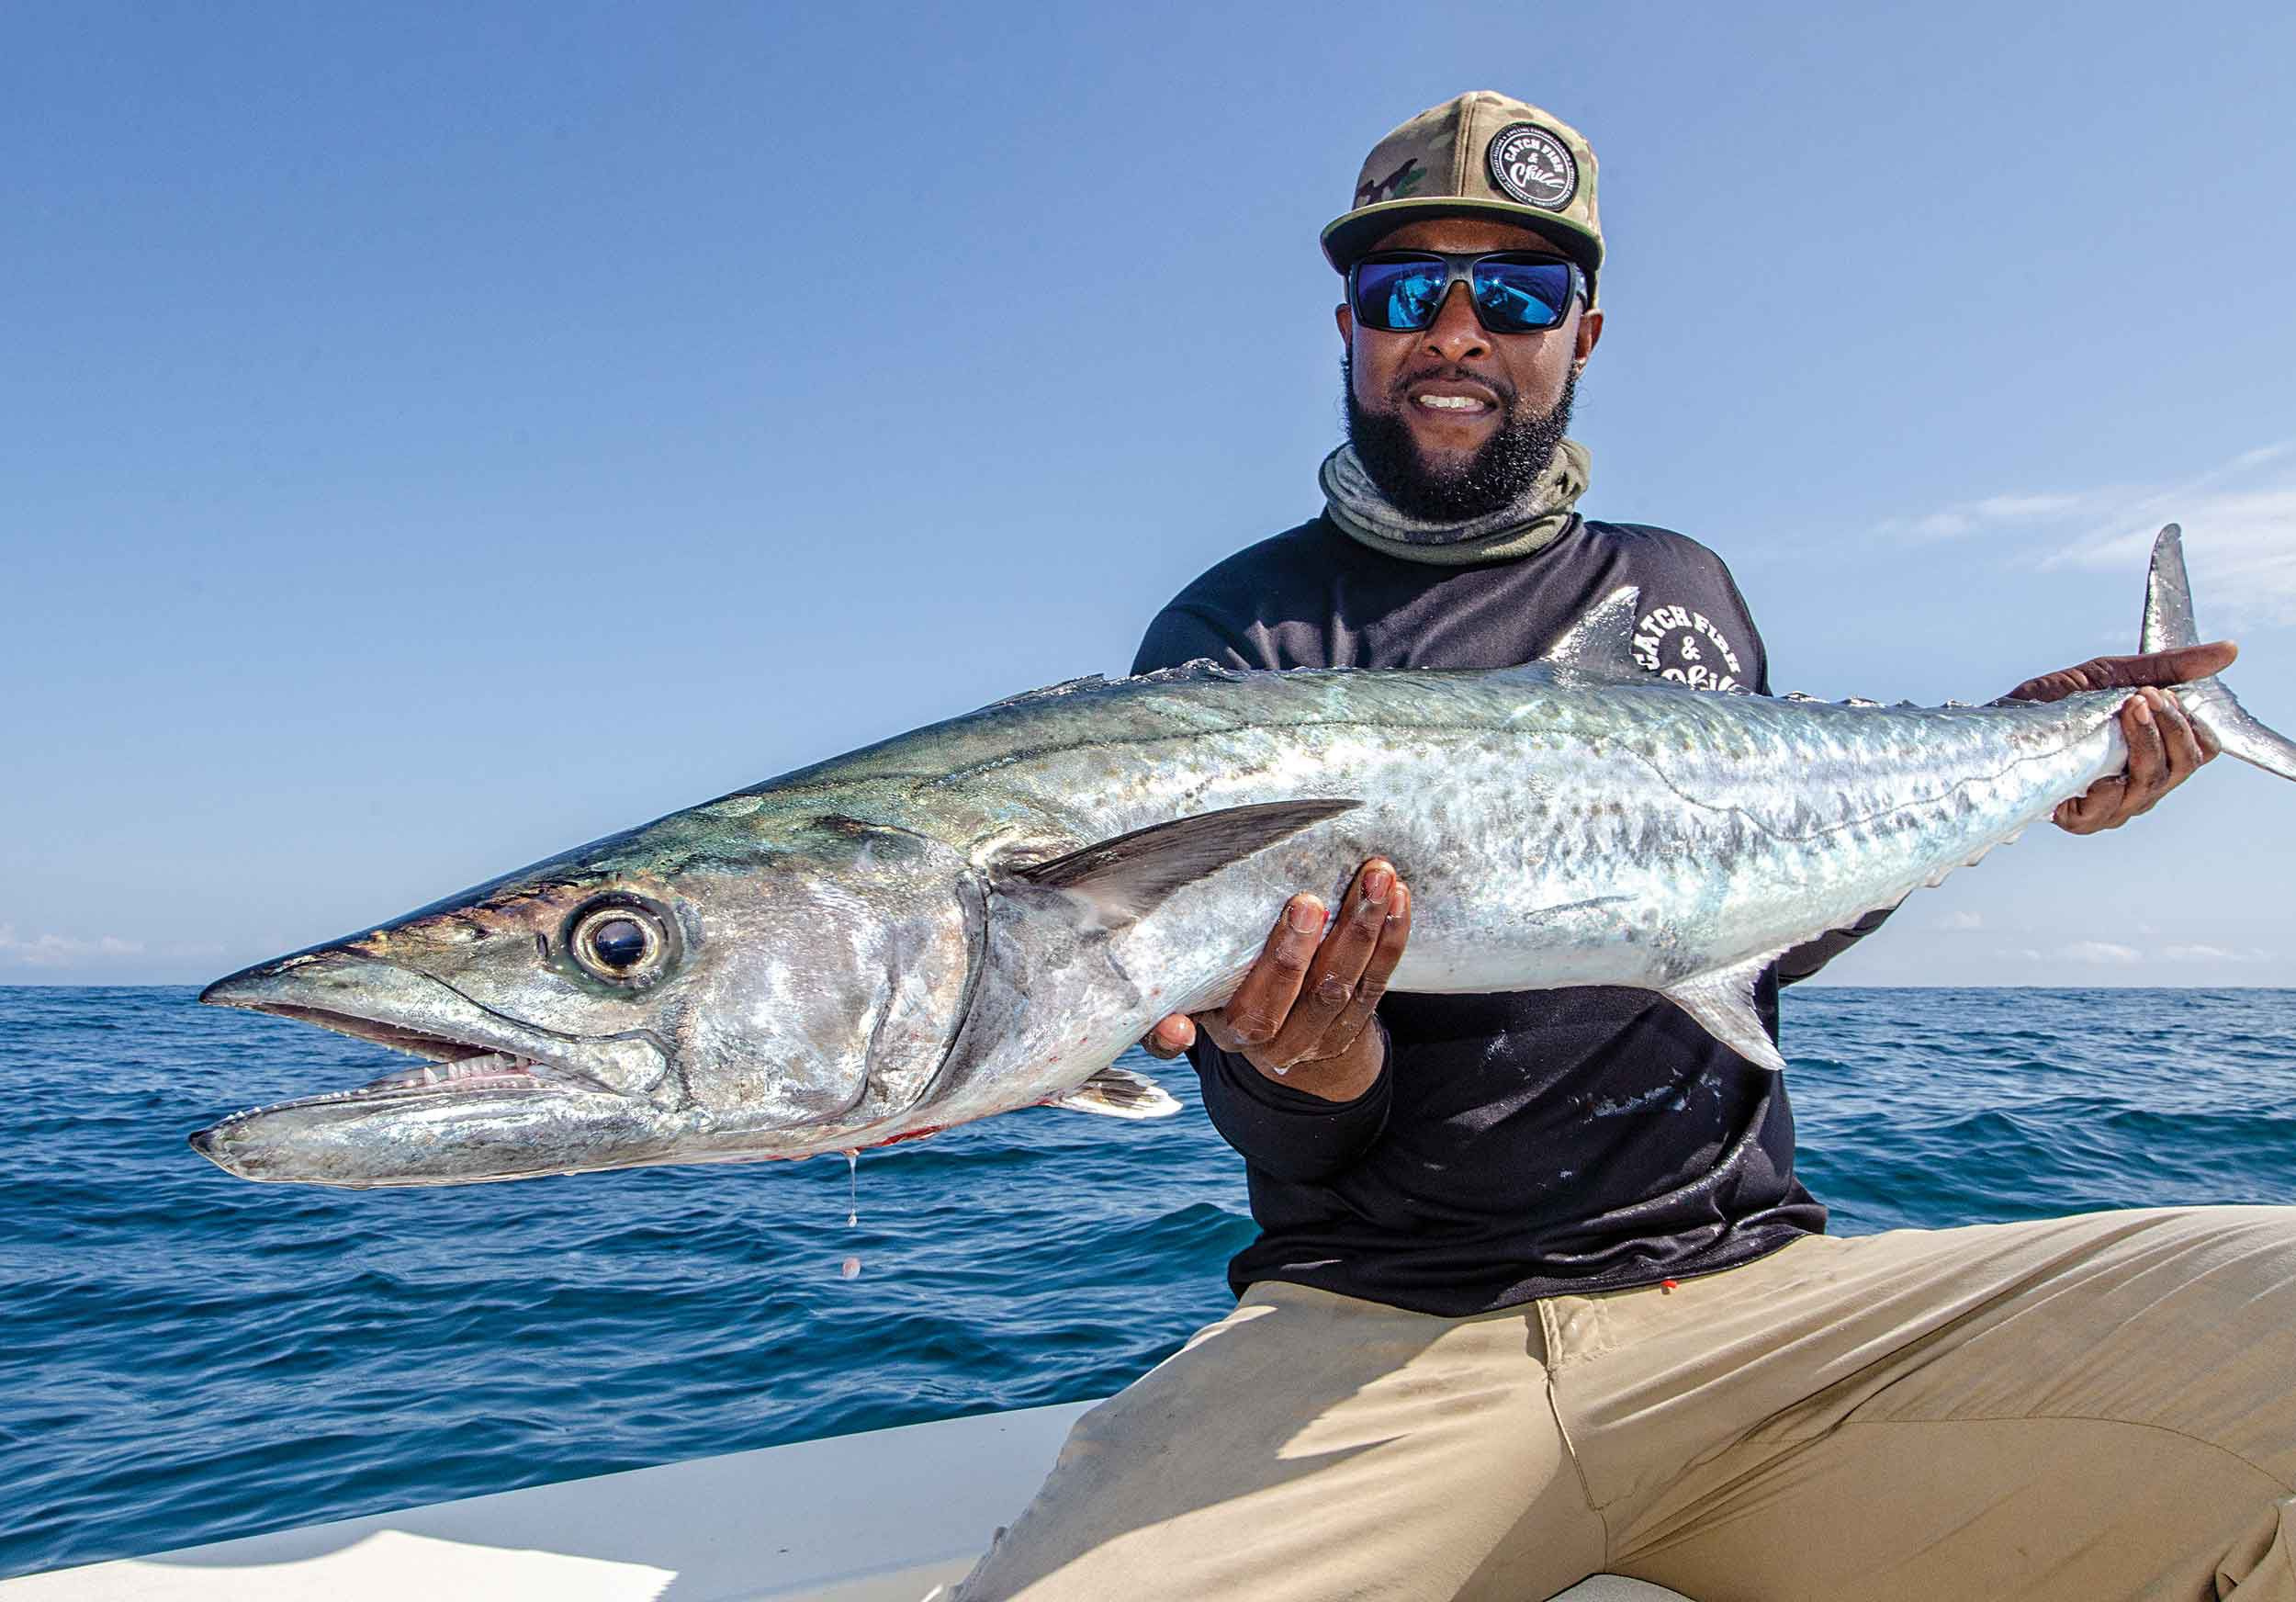 Catching trophy kings like this one doesn't require long runs offshore in mid-Atlantic waters.